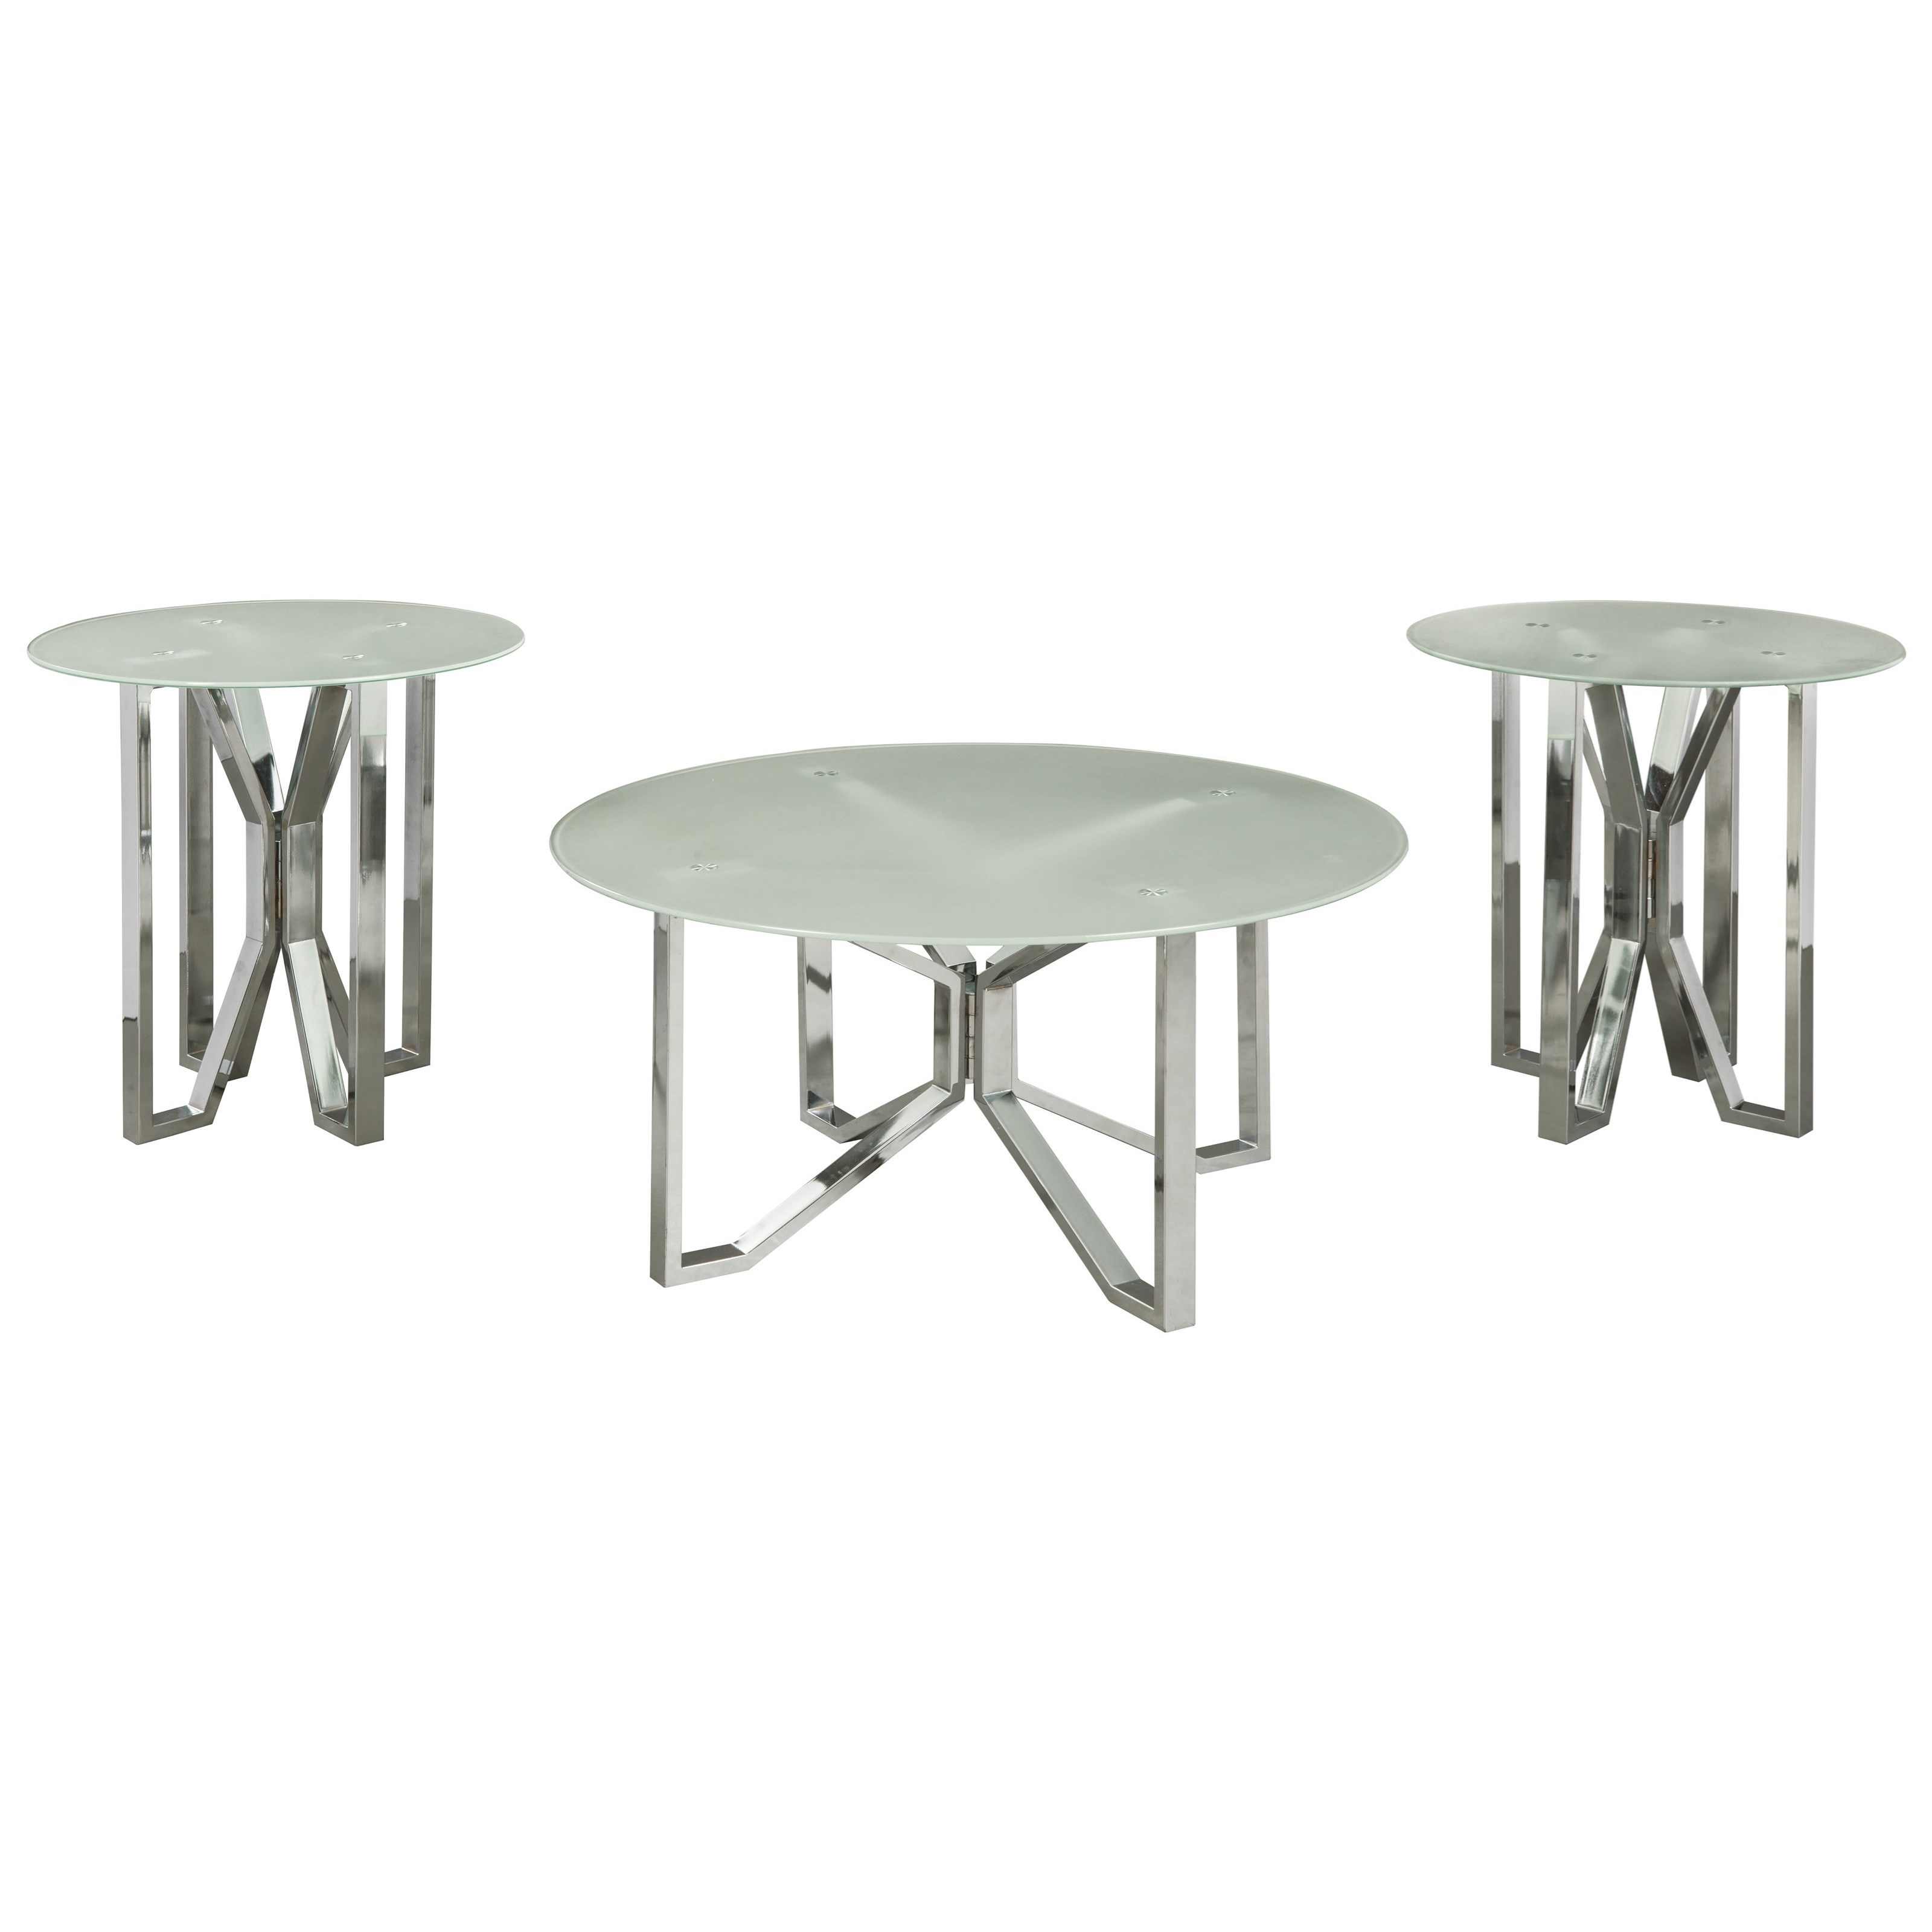 Signature Design by Ashley Tangeline 3 Piece Occasional Table Set - Item Number: T320-13